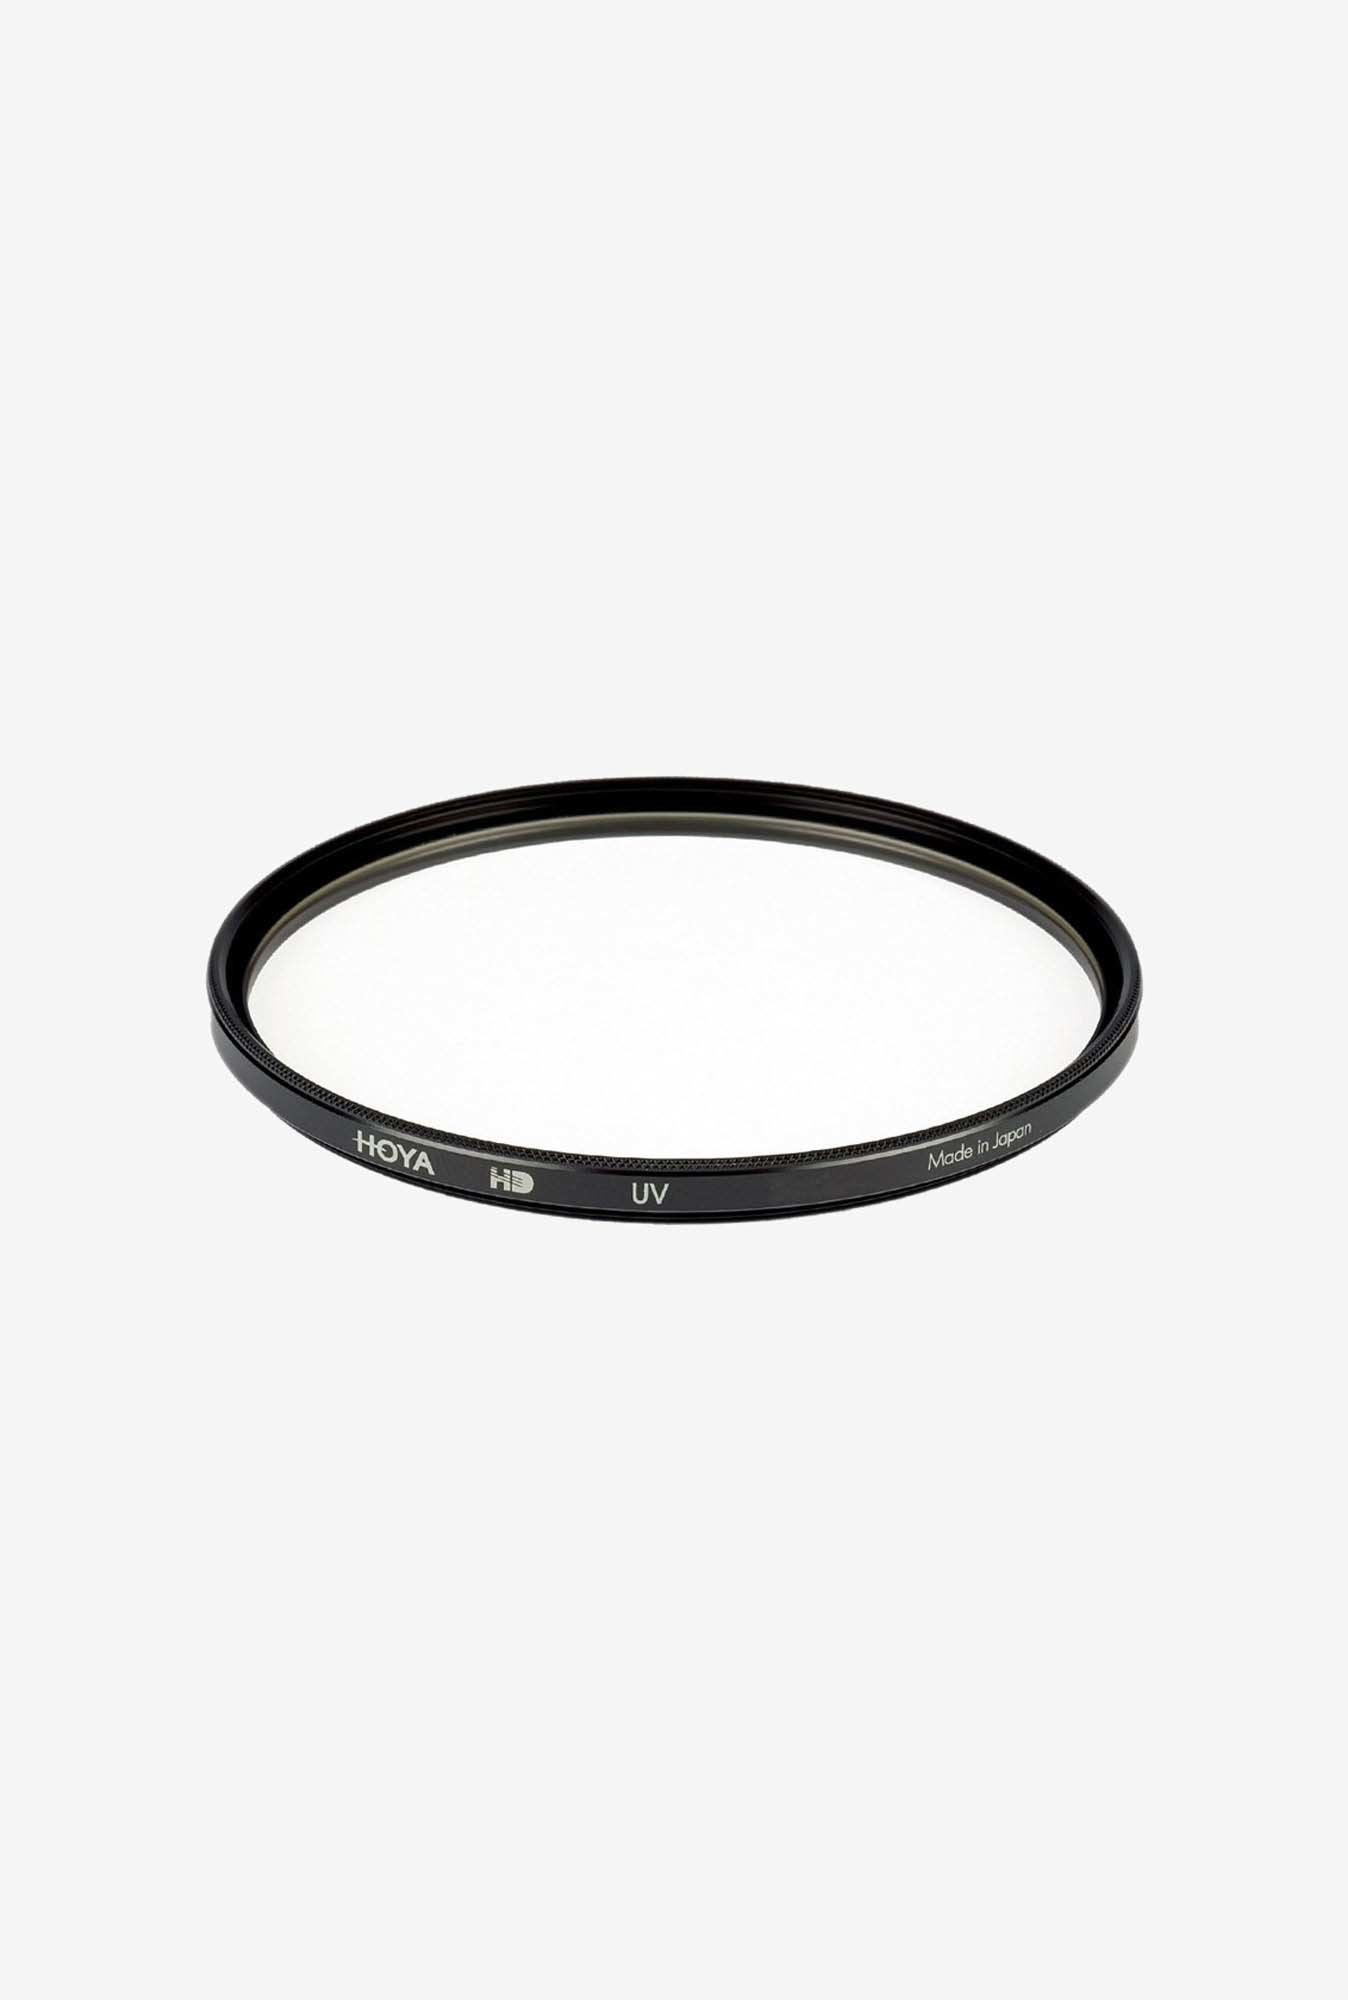 Hoya 72mm Hd 8Layer Multi-Coated Digital UV Filter (Black)